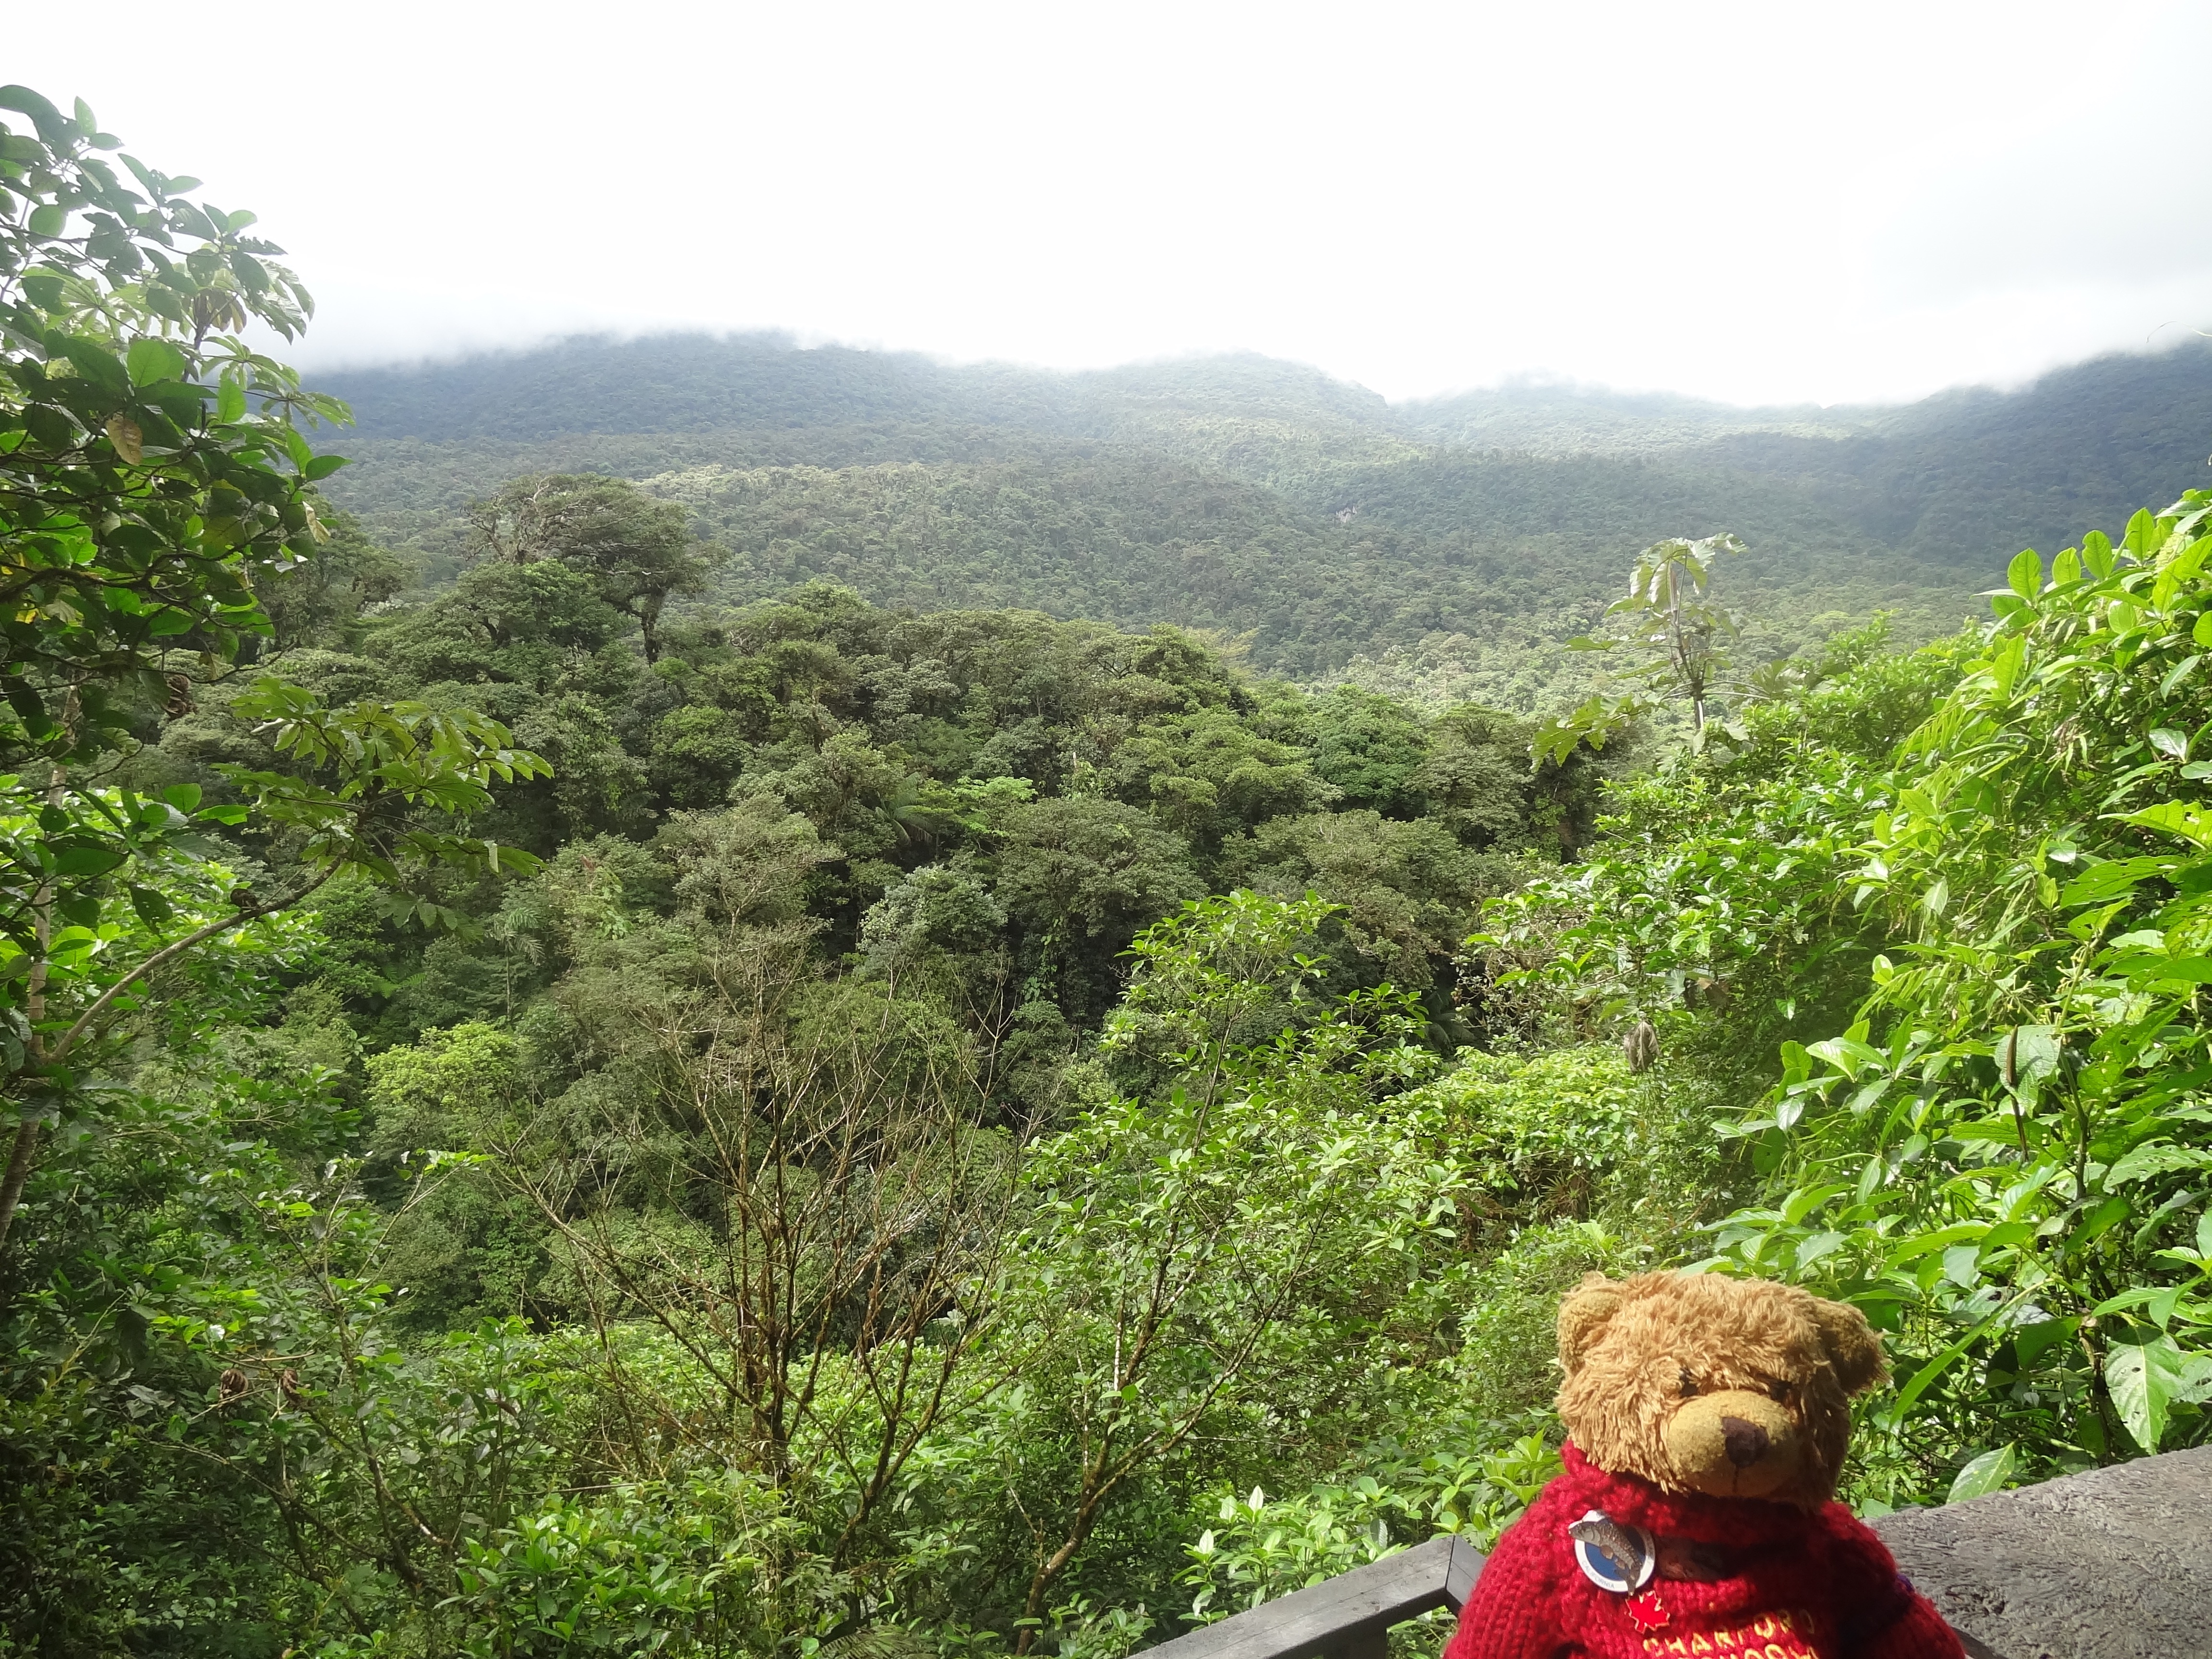 There is an upper canopy of trees that are between 60 and 130 feet high. This is where most of the animals live. Then there is the lower canopy of trees 60 ... & Belize u2013 Adventure Freeway.. Alaska to Argentina